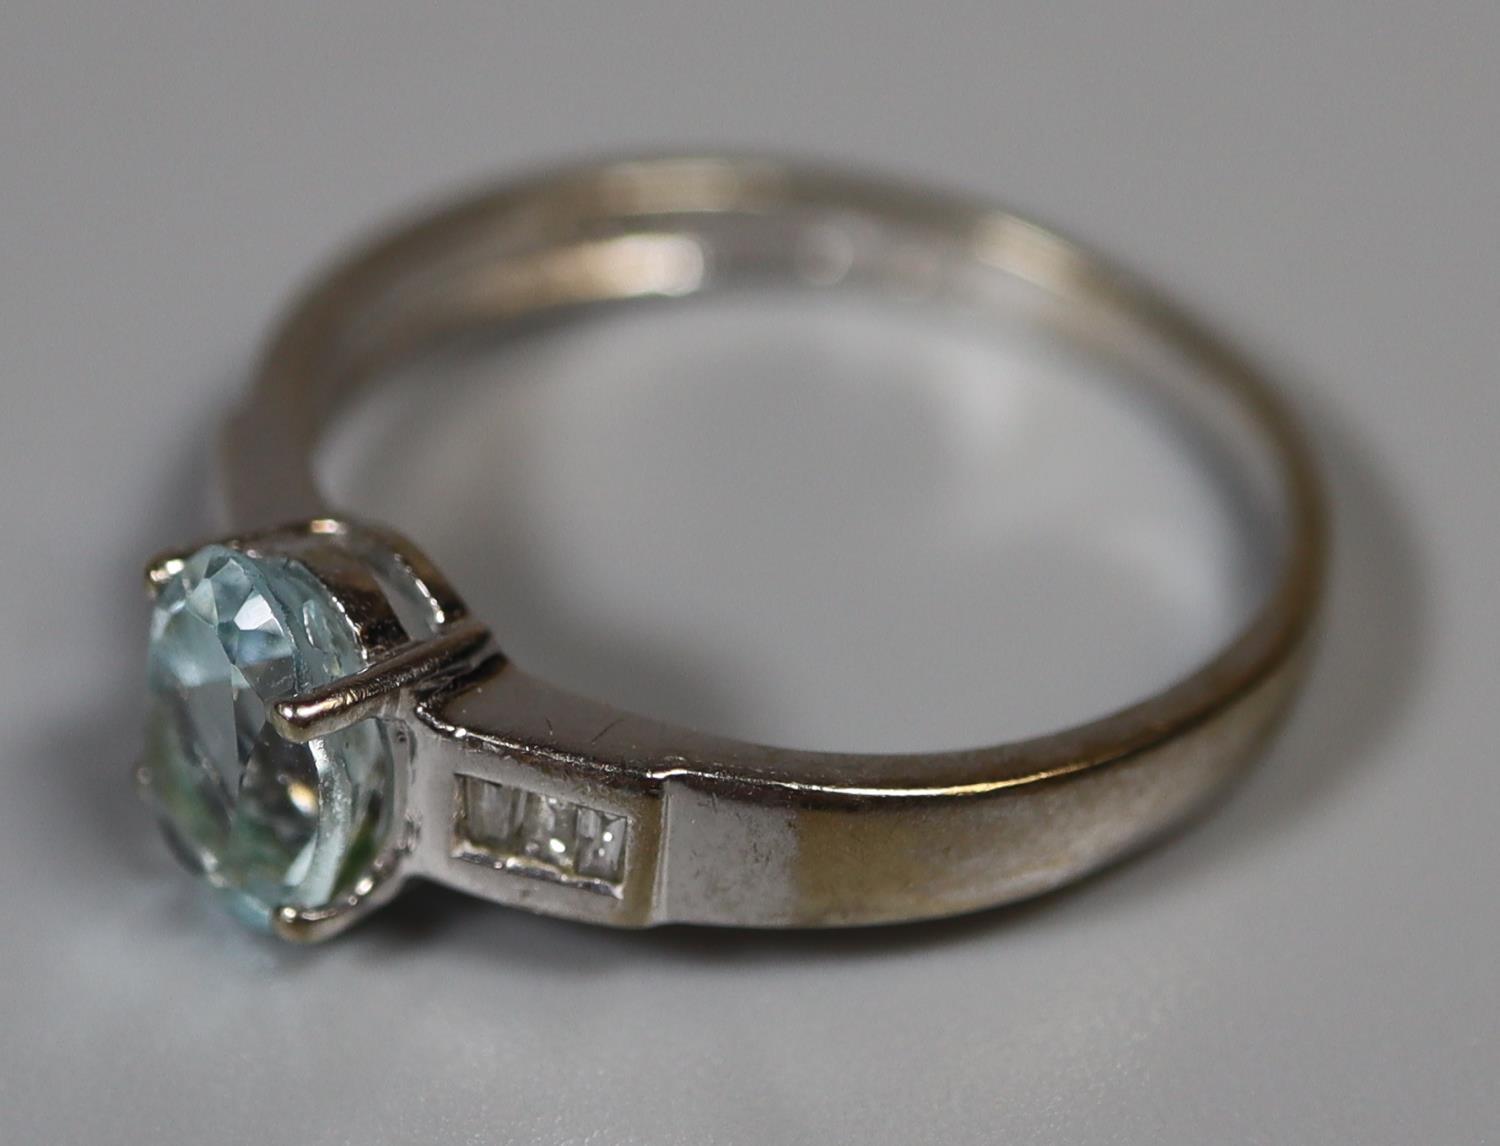 9ct white gold aquamarine and diamond ring. Ring size M. Approx weight 2 grams. (B.P. 21% + VAT) - Image 3 of 3